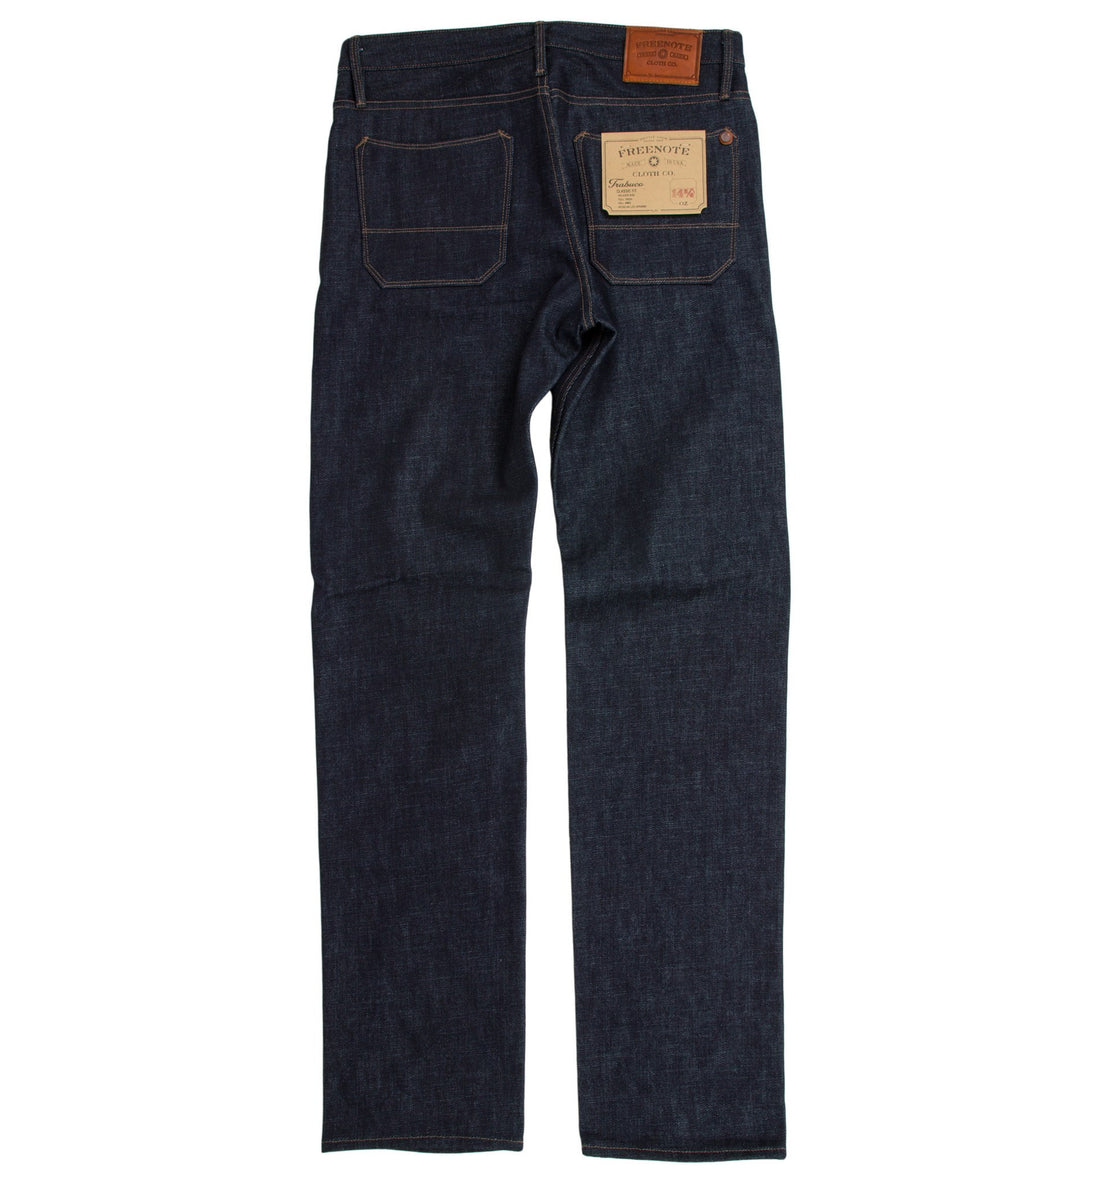 Freenote Trabuco Classic Straight 14.75oz - Apparel: Men's: Pants - Iron and Resin